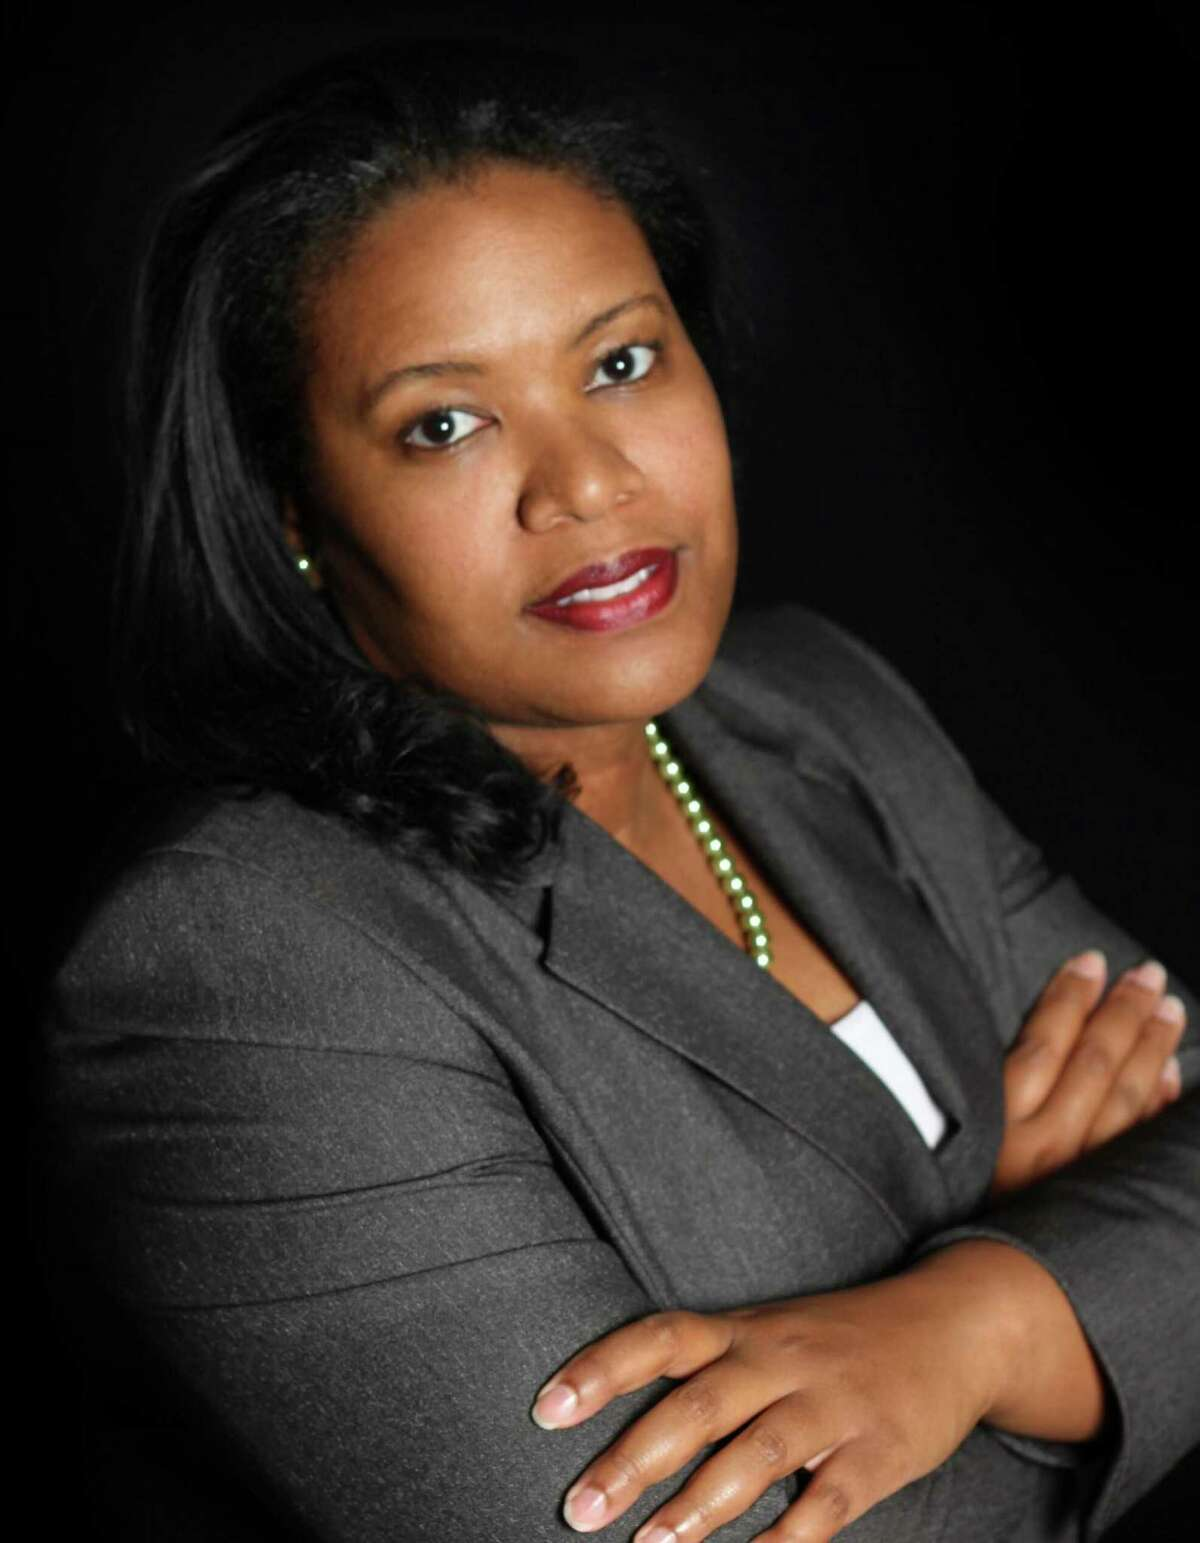 In historic win, Yolanda Ford was elected as Missouri City's next mayor Saturday. >>>See other candidates across the U.S. who made history this year ...